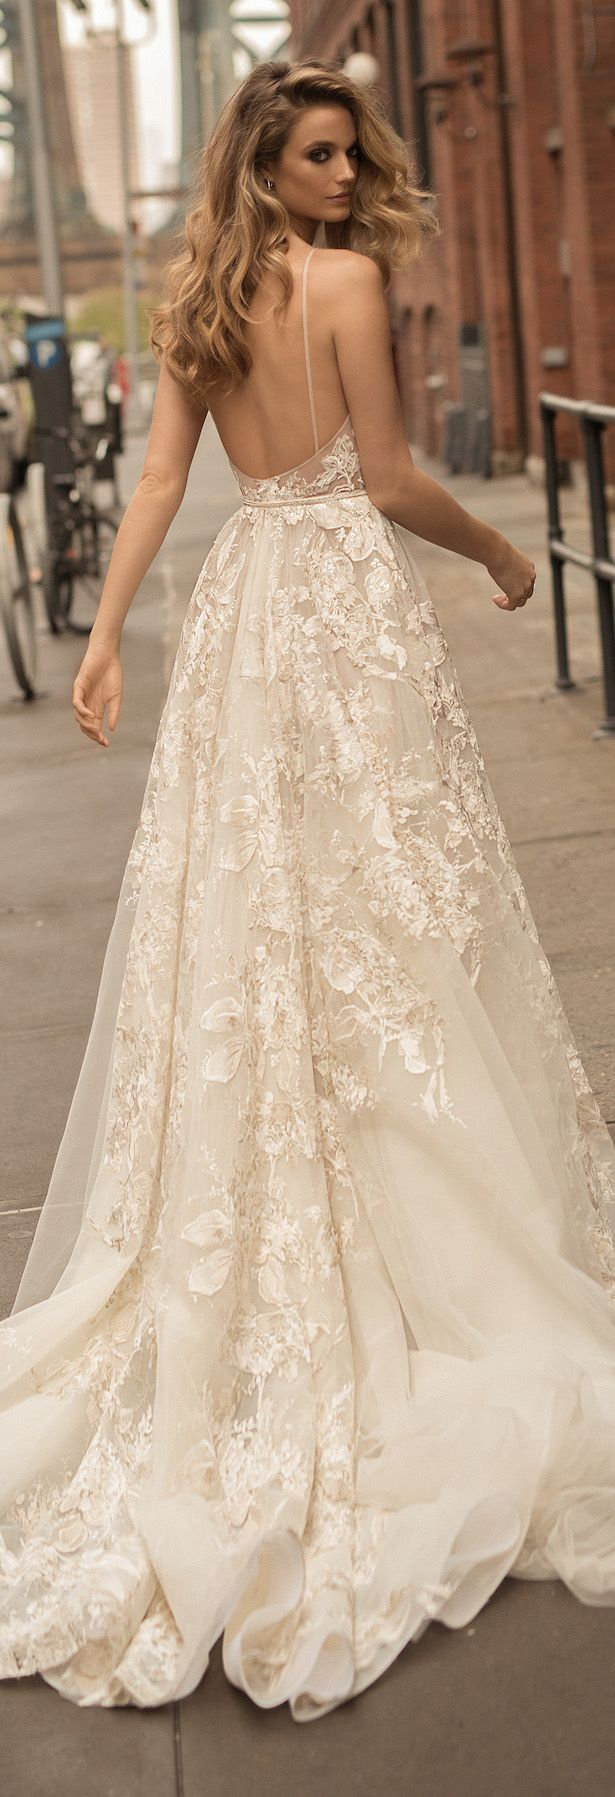 Berta wedding dress collection spring wedding dresses